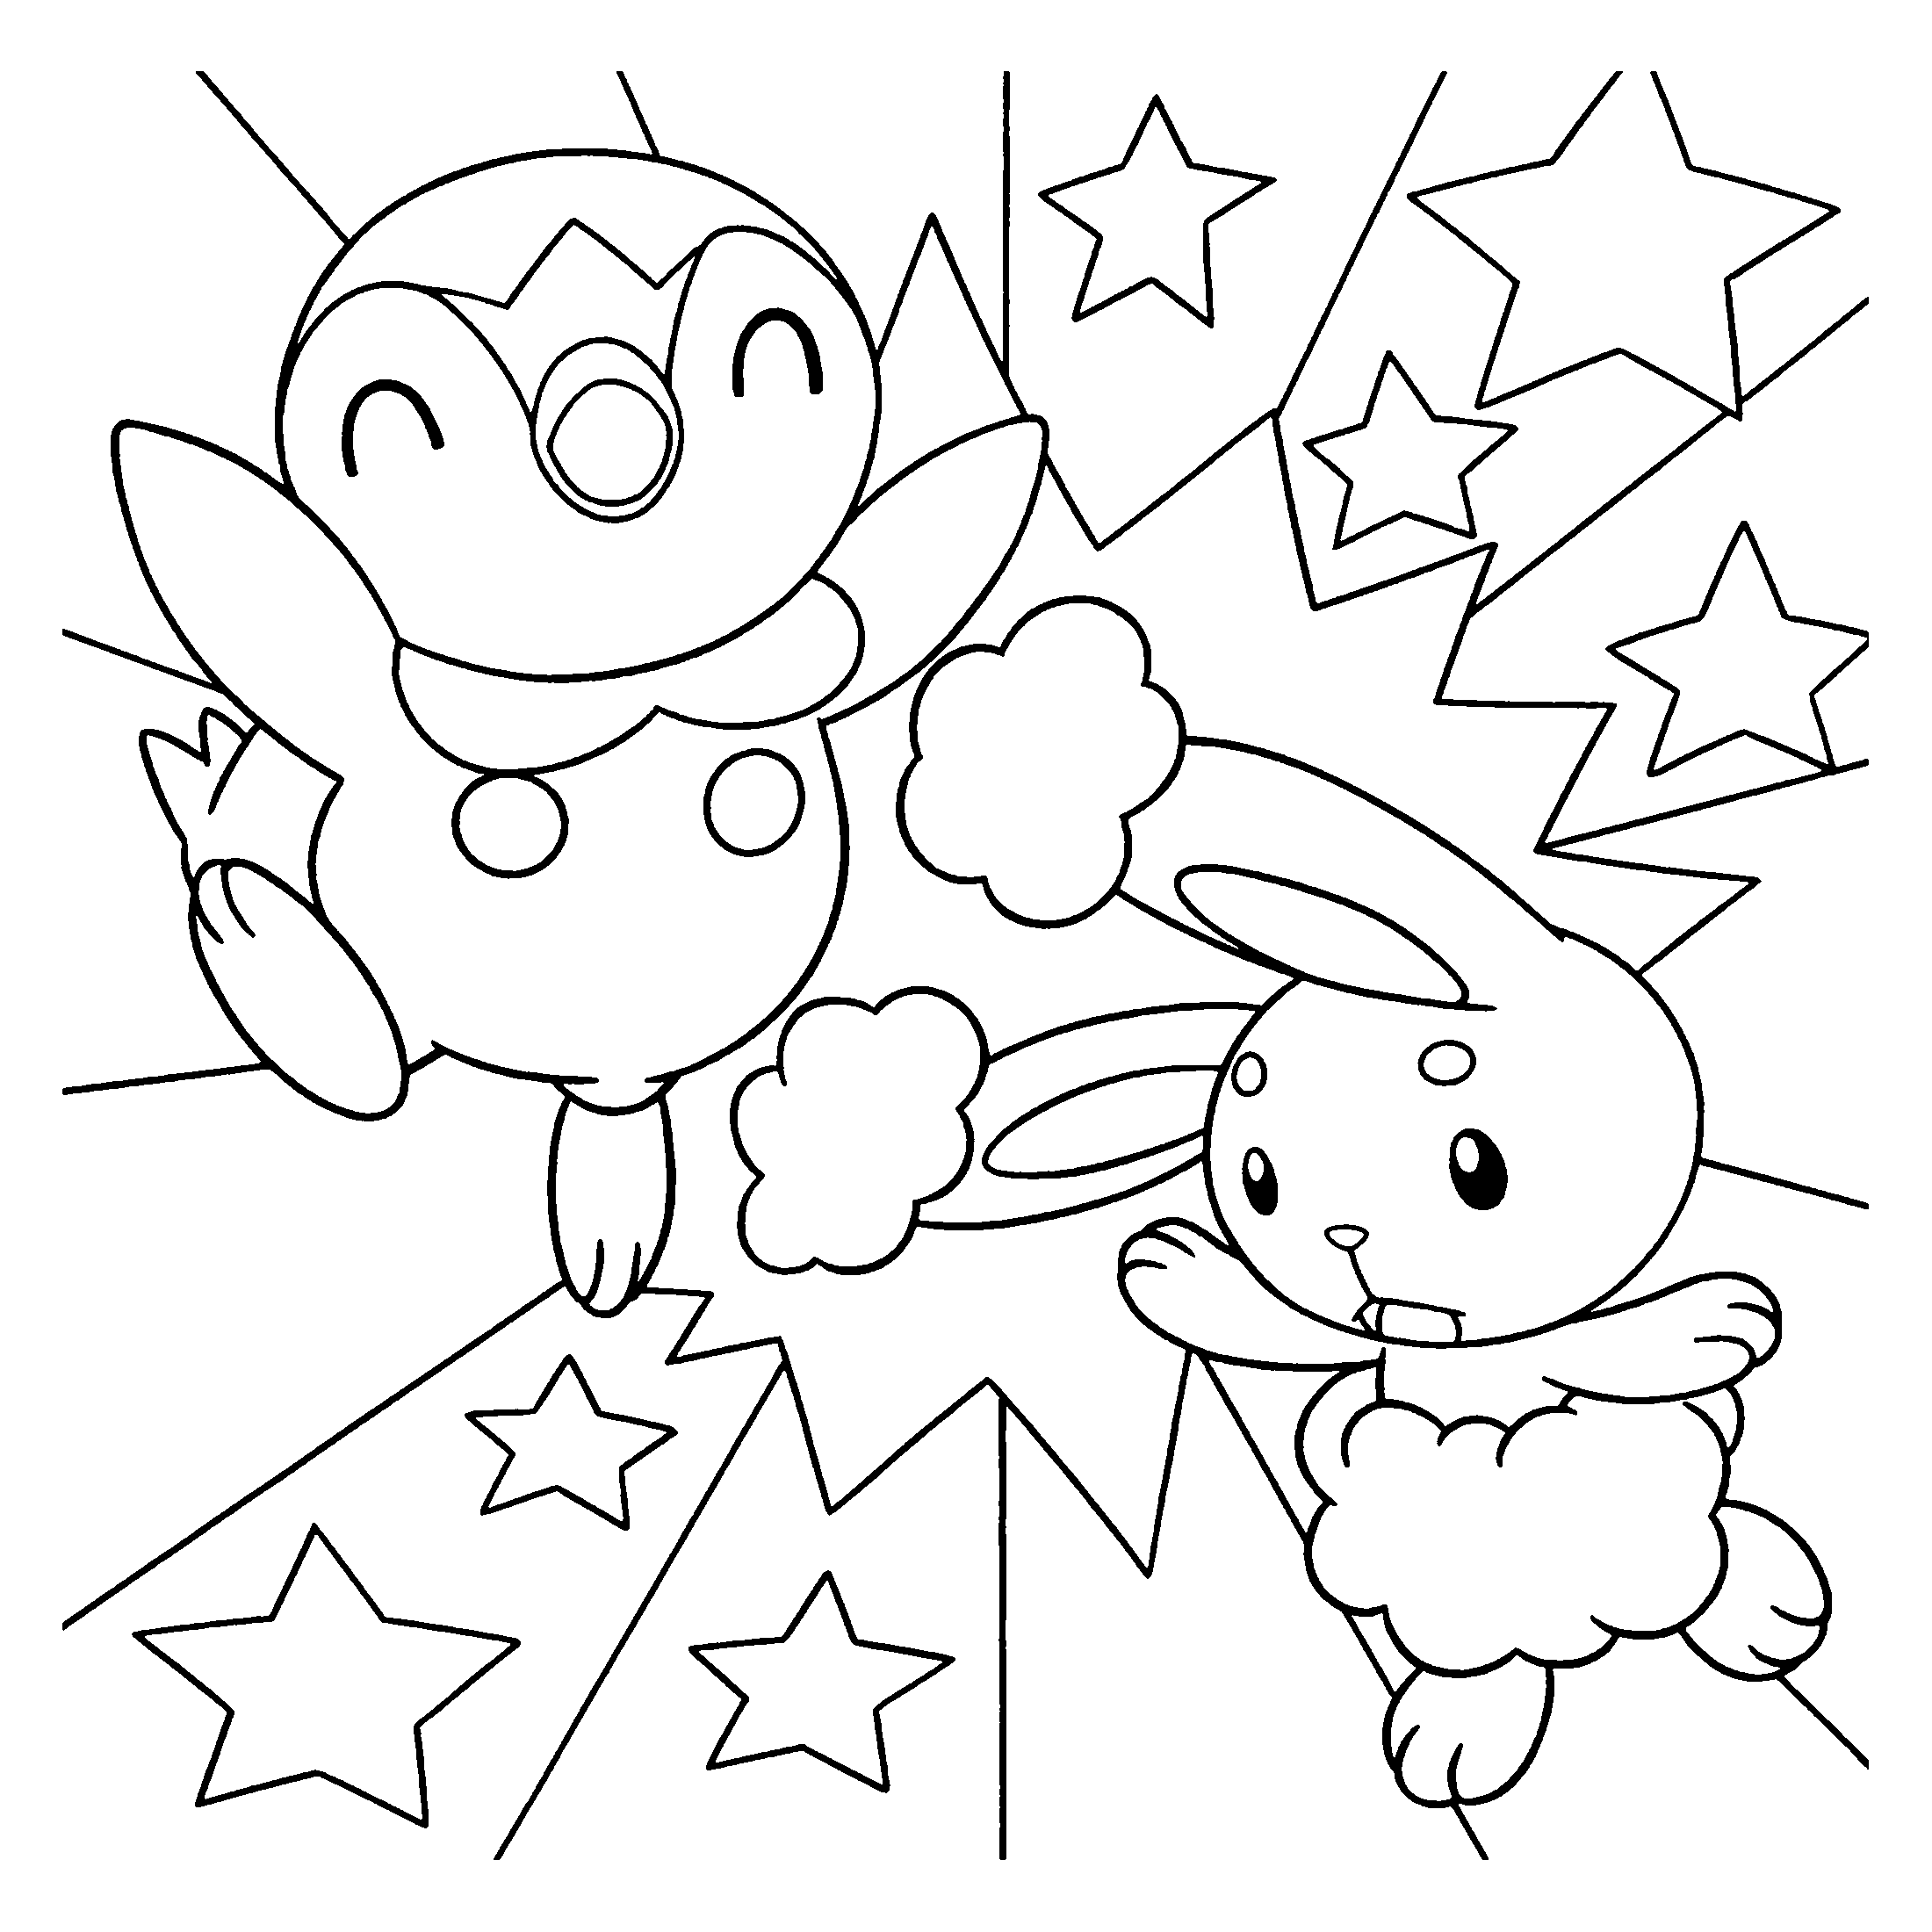 pokemon buneary coloring page - coloring page tv series coloring page pokemon diamond